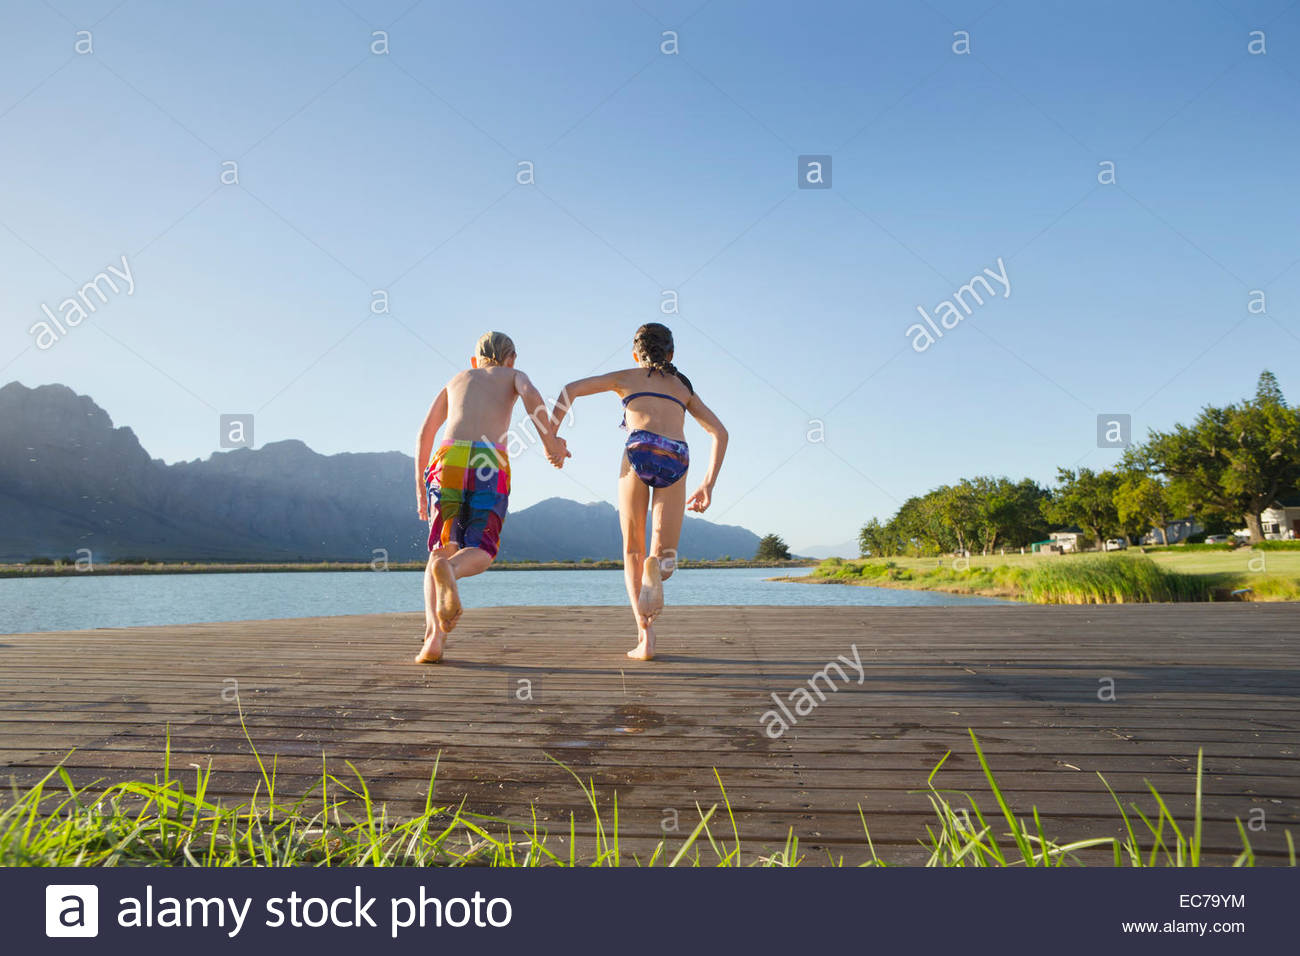 Children in swimwear, running to jump into a lake from a jetty - Stock Image